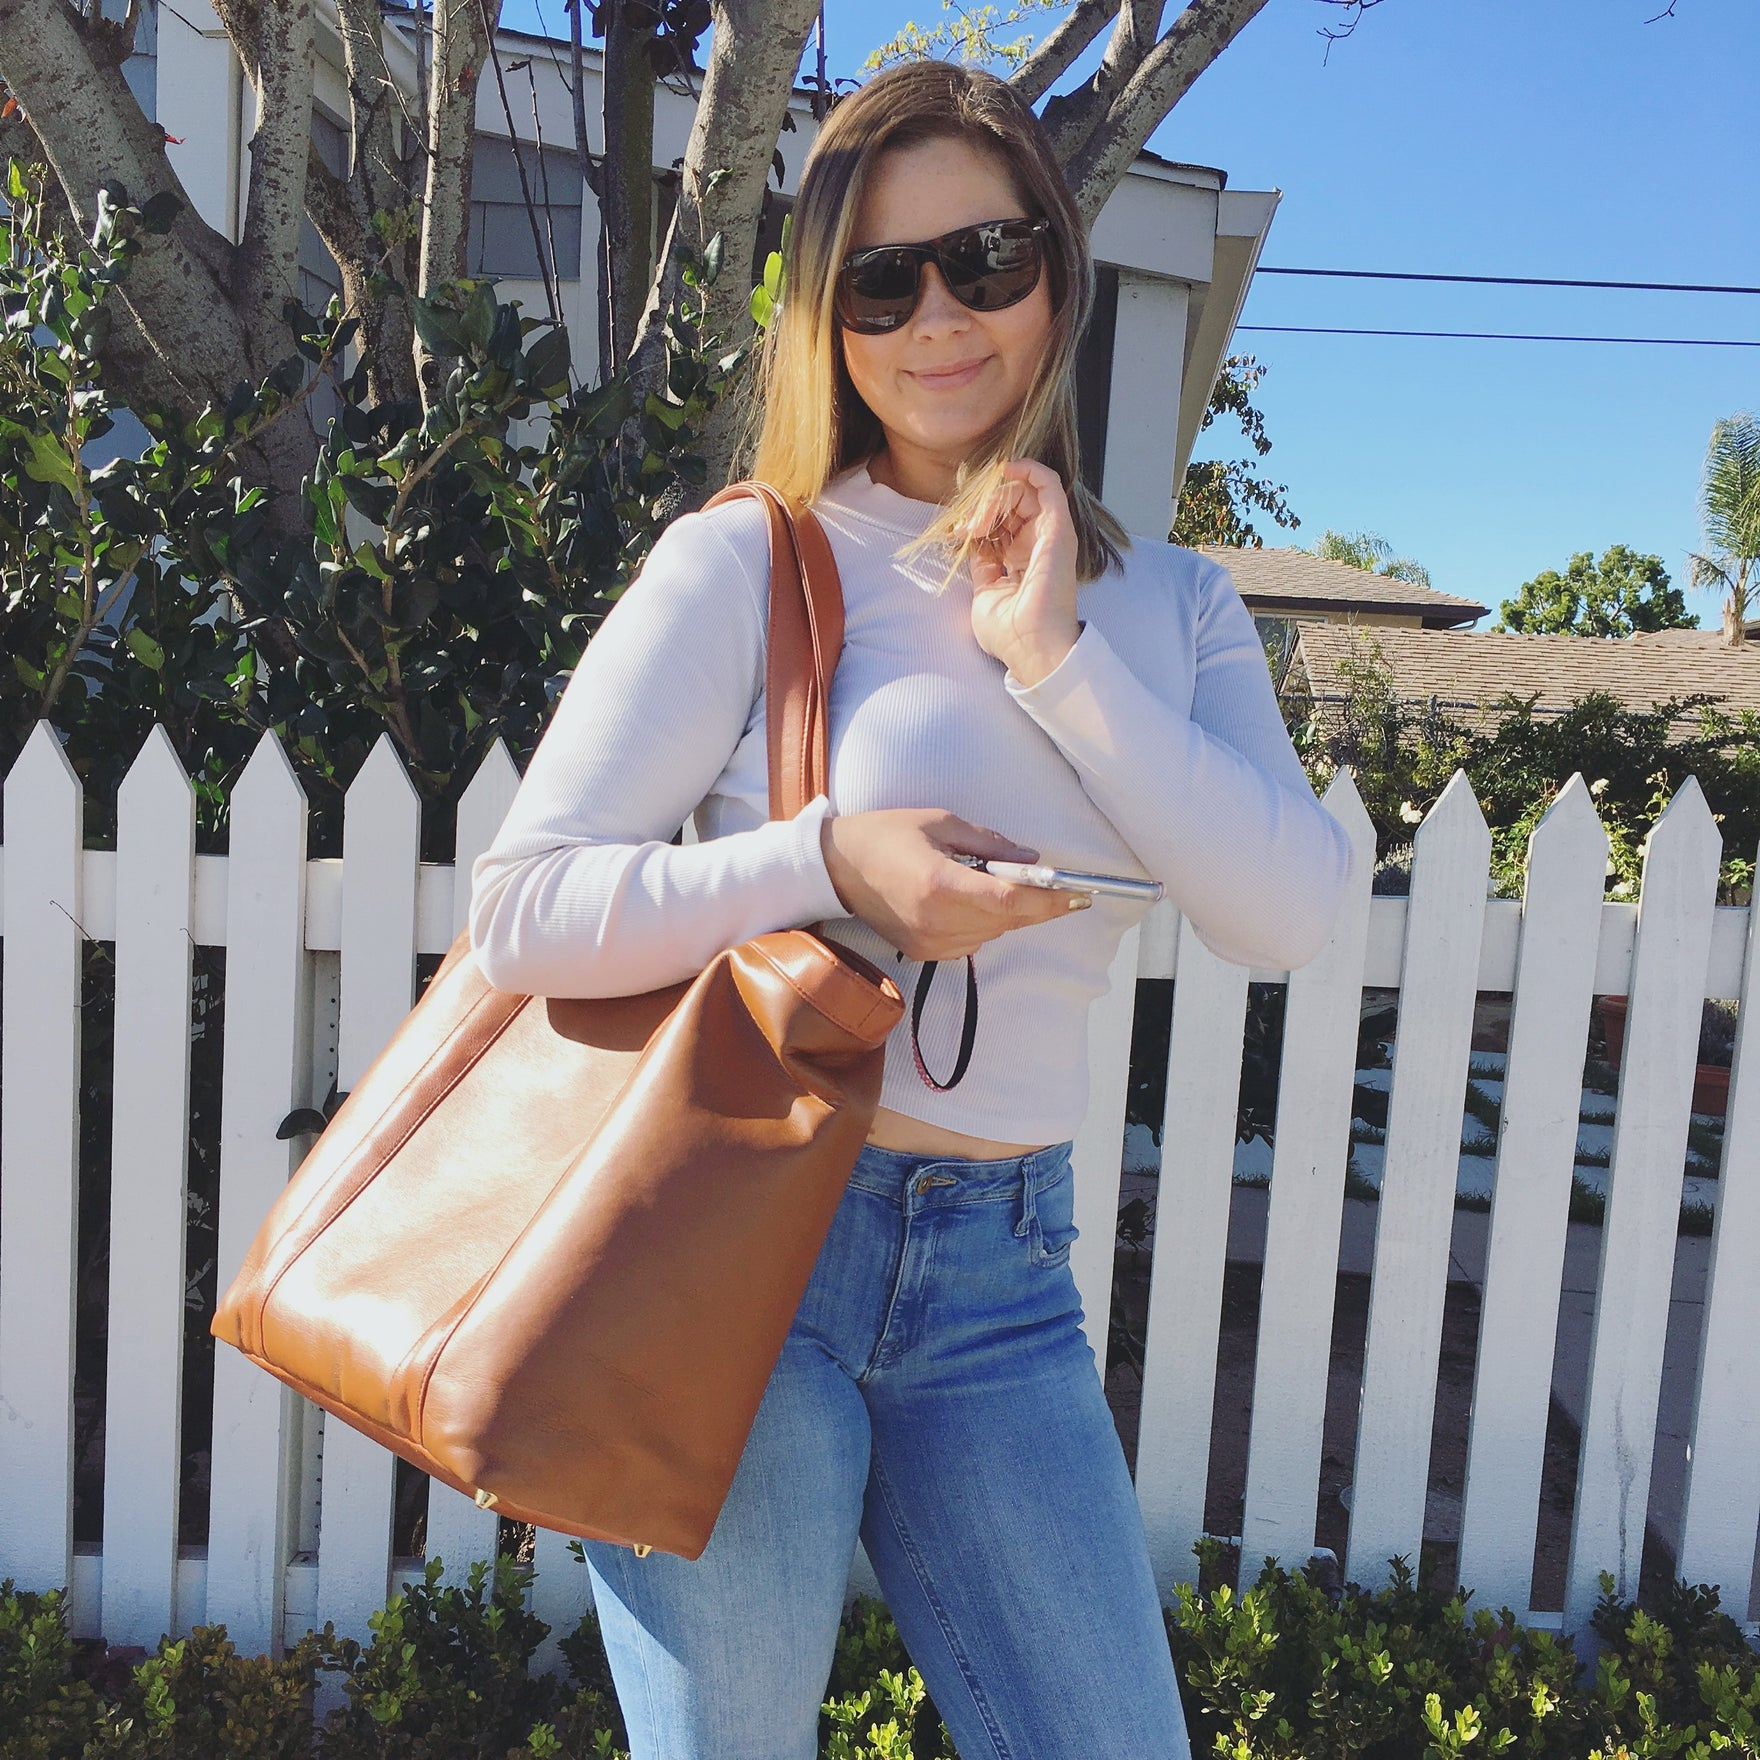 Natalie sporting her favorite travel and school tote